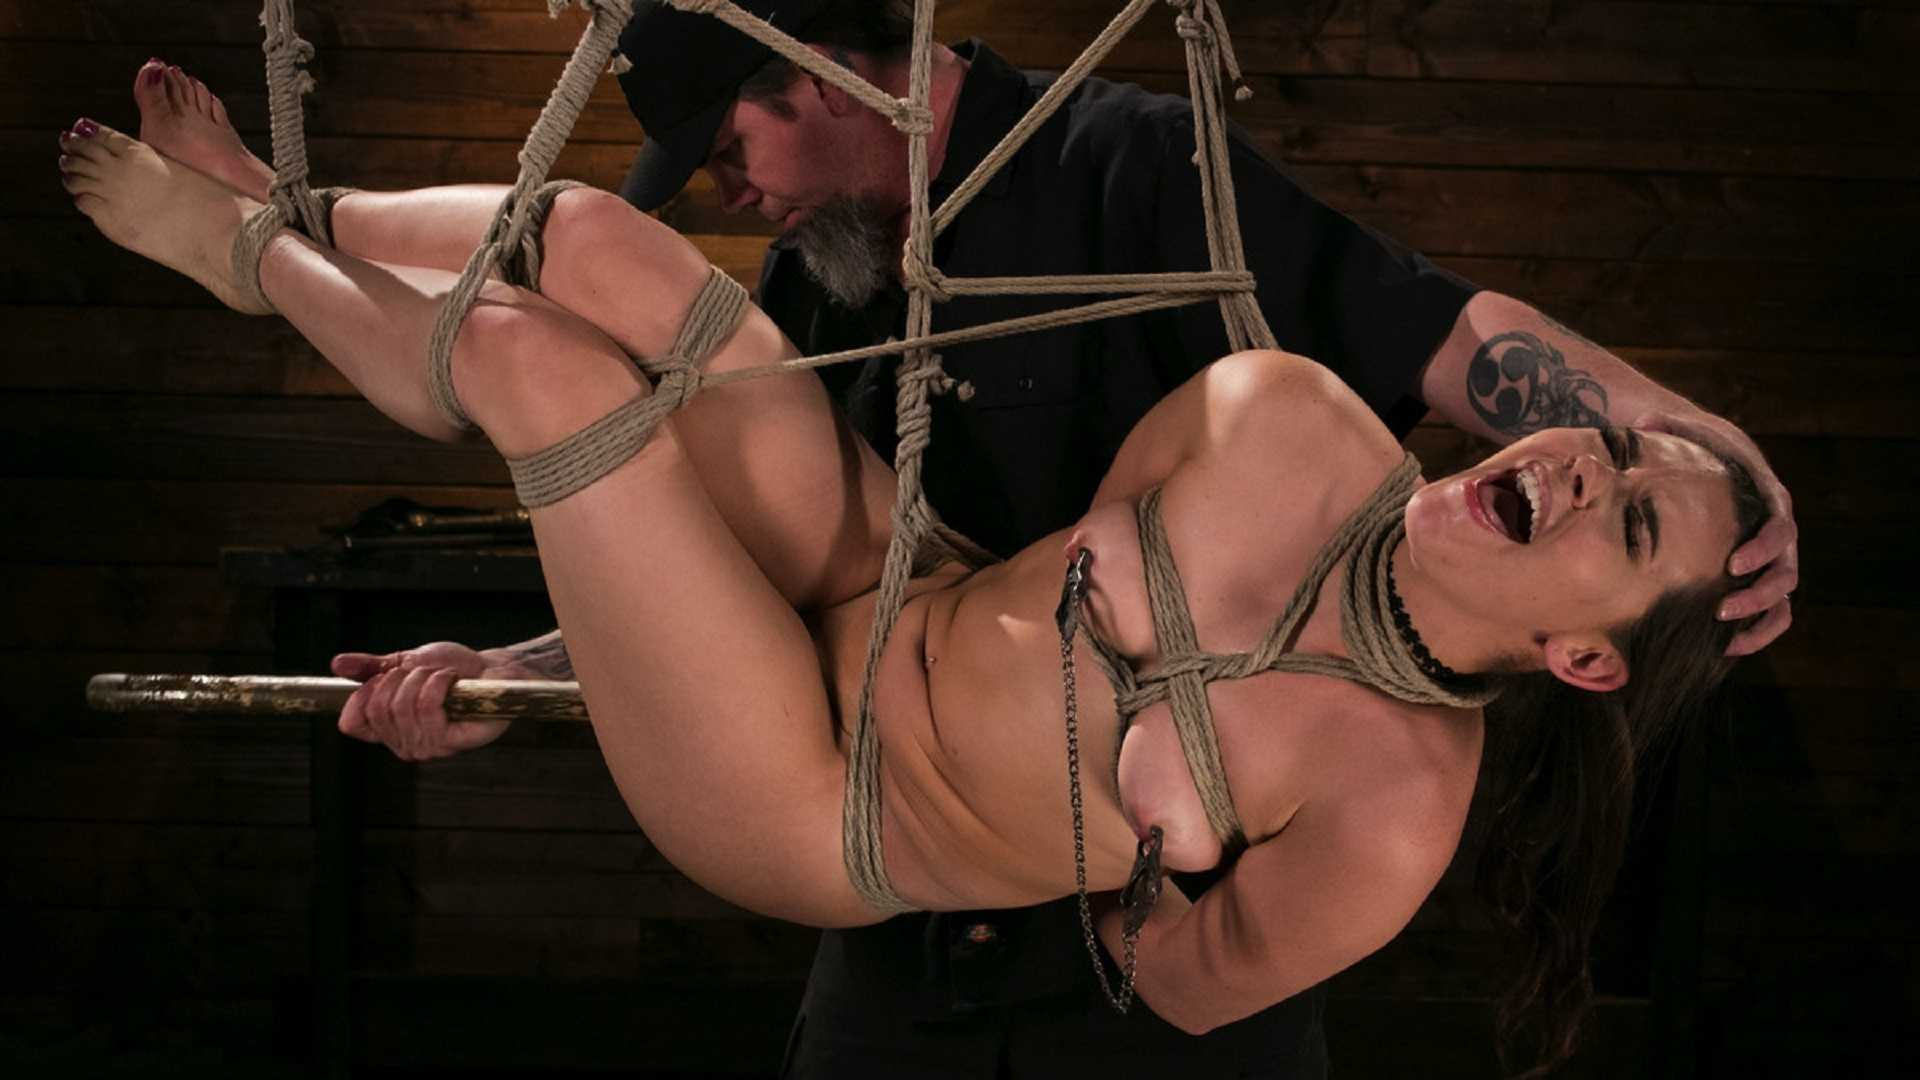 zhestkie-bdsm-video-dvorets-san-susi